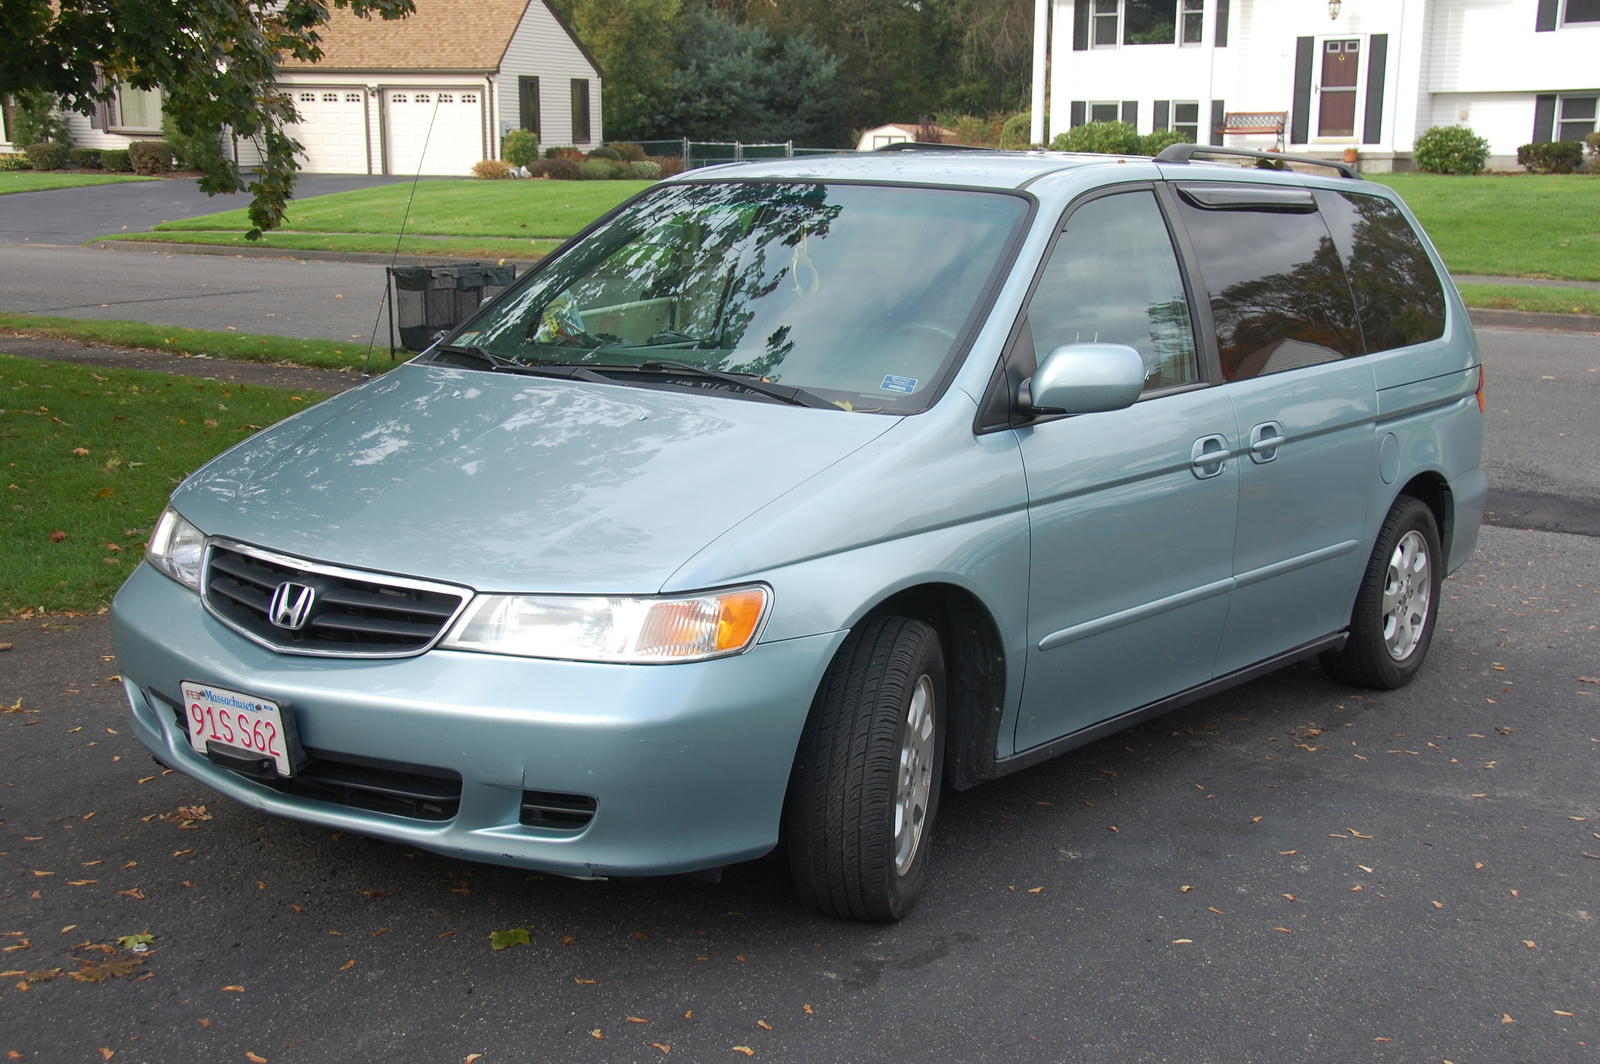 2003 honda odyssey exterior pictures cargurus. Black Bedroom Furniture Sets. Home Design Ideas